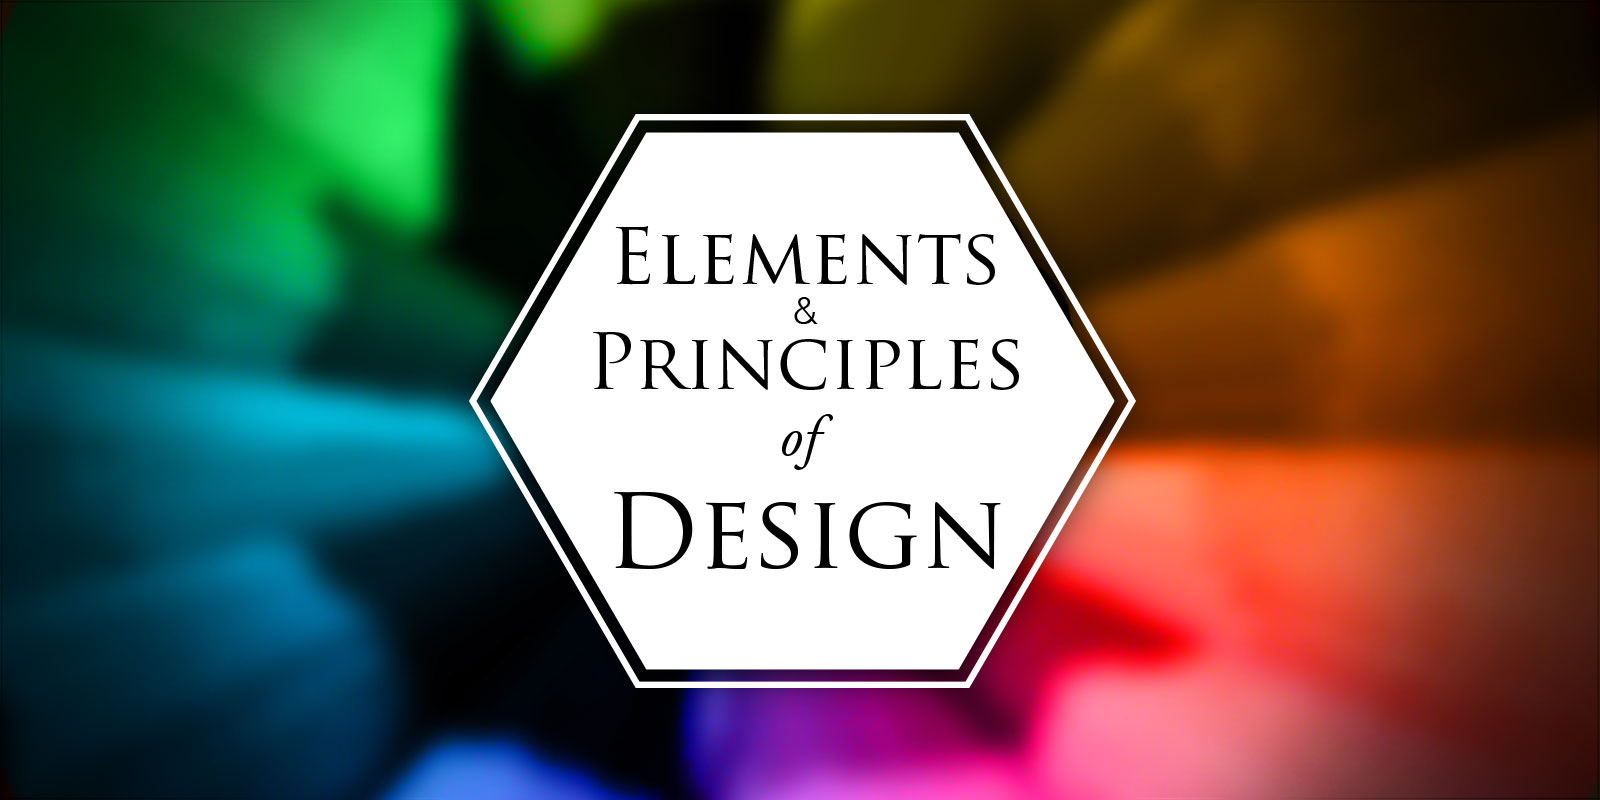 Elements By Design : Elements and principles of design degrees studio